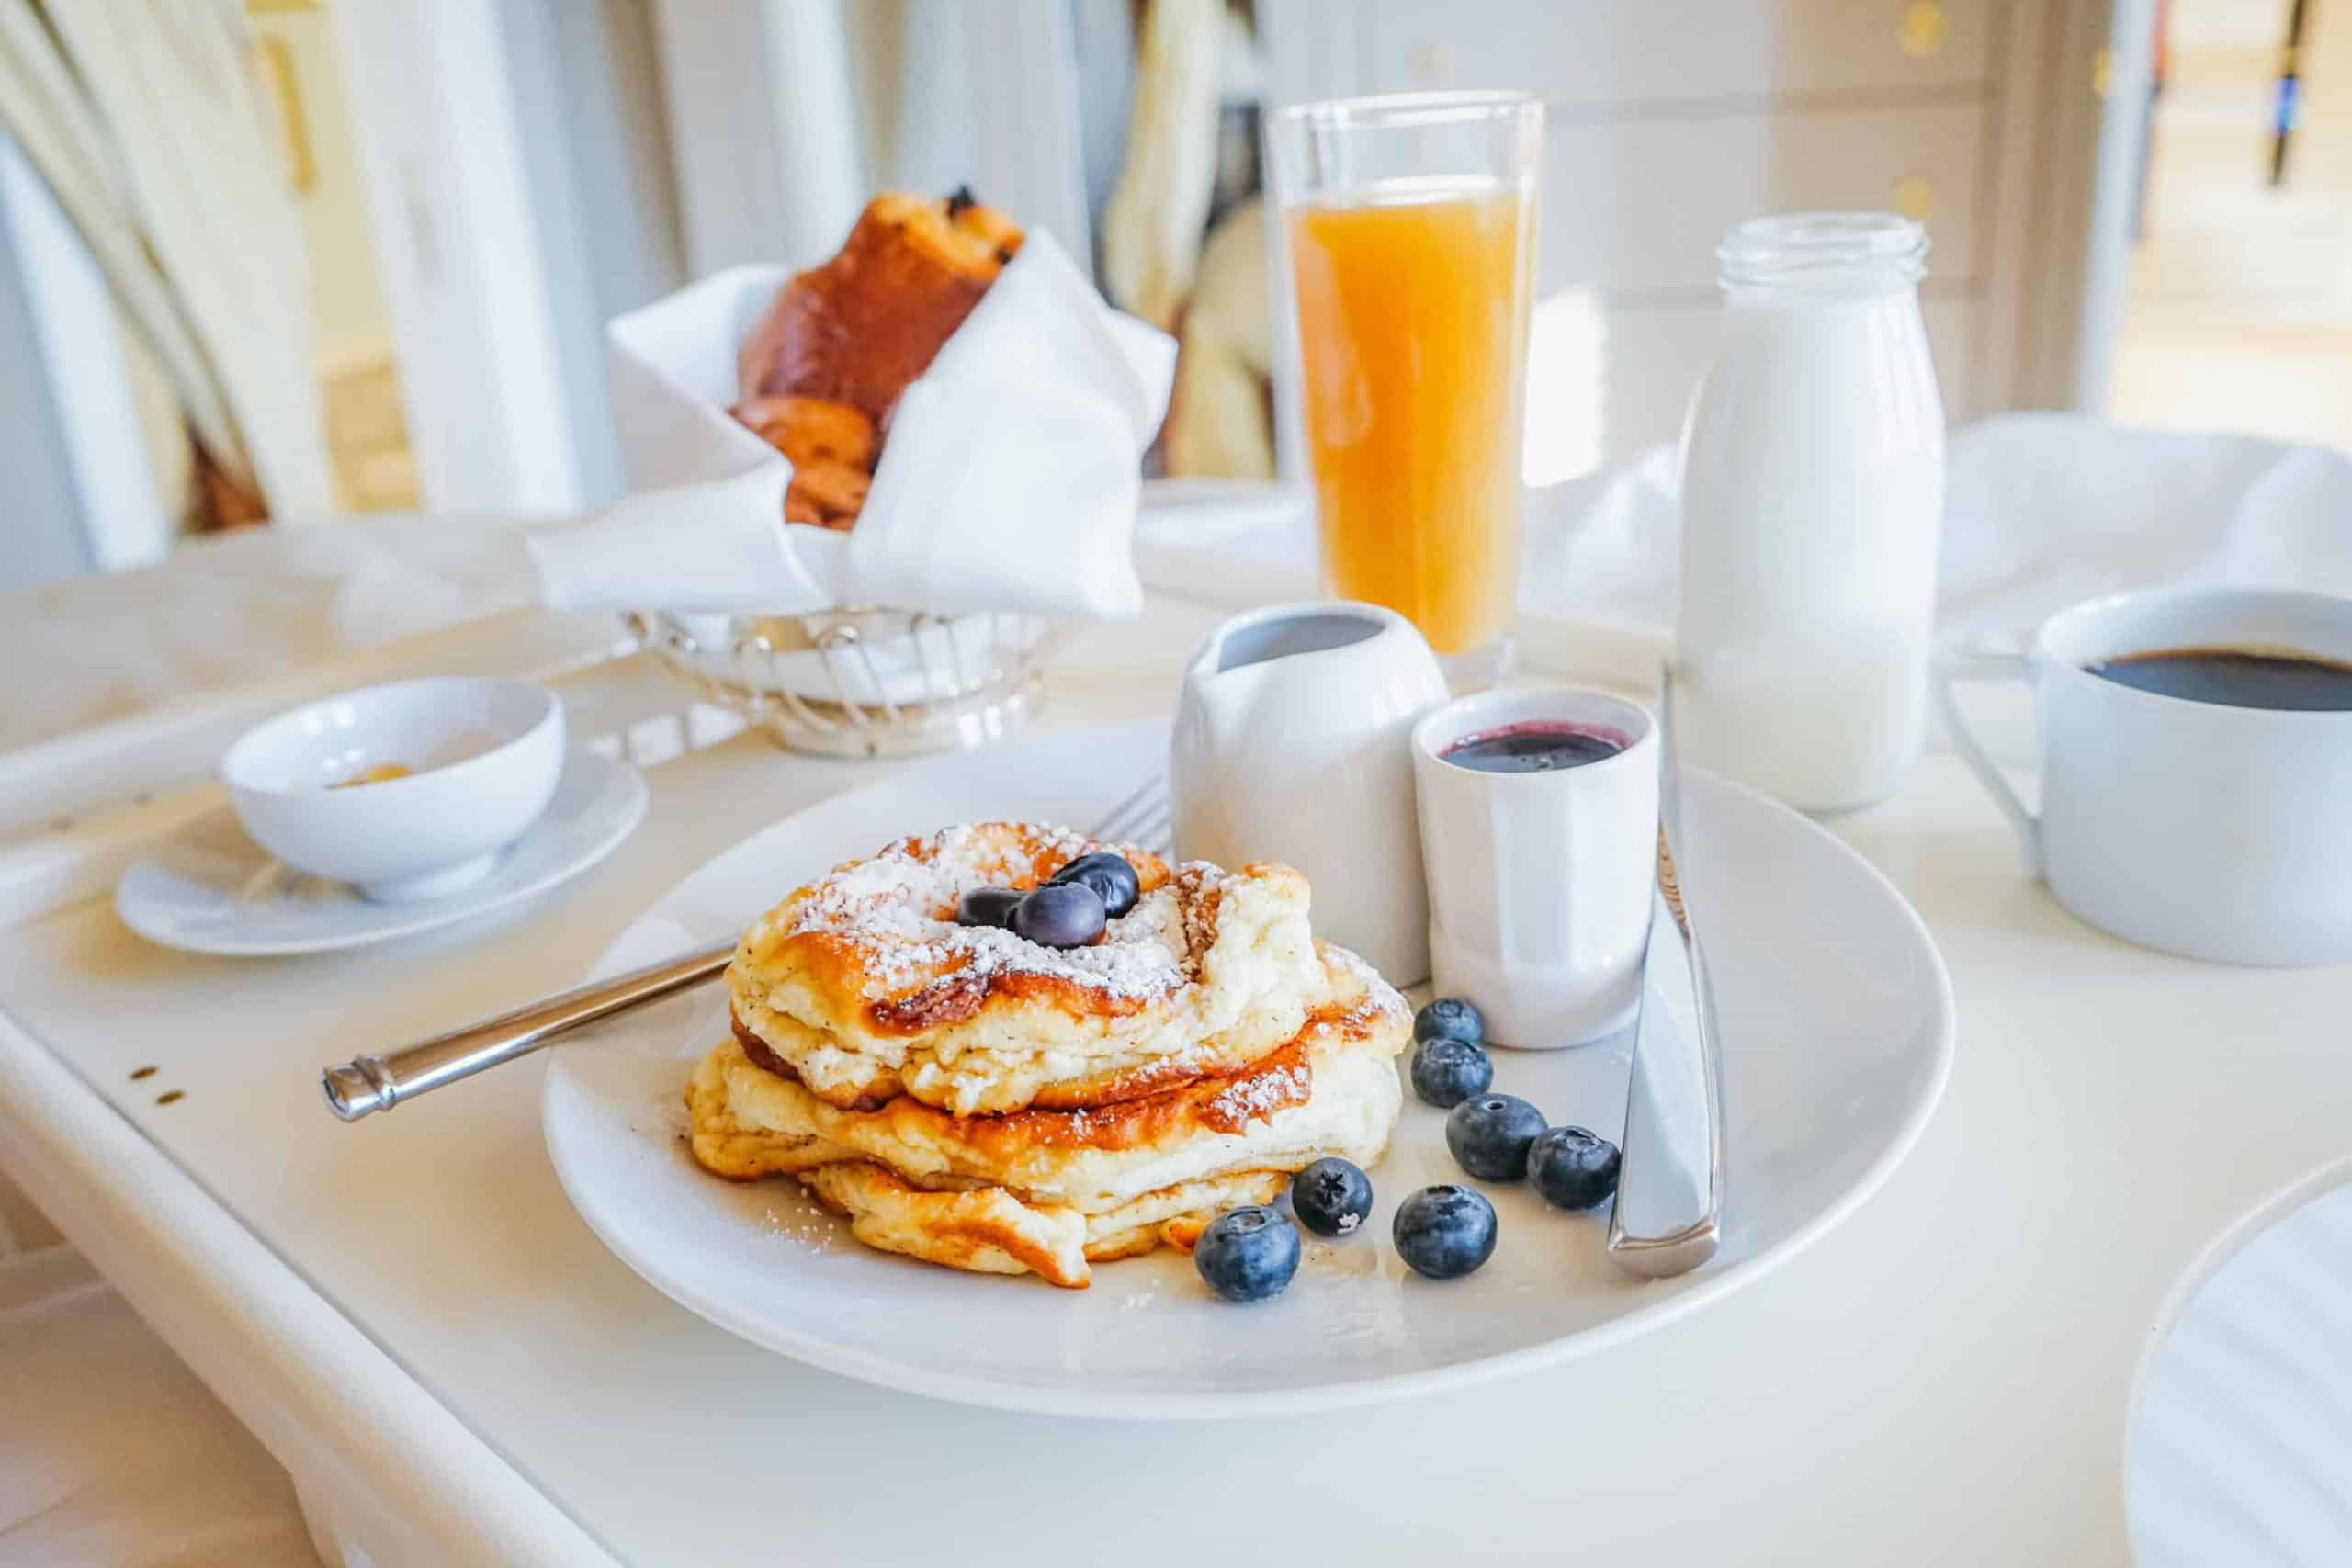 Closeup of blue berry pancakes upon a room service tray inside a guest room of The Ivy Baltimore. Orange Juice, bread rolls and a glass carafe of milk rest on the tray as well.